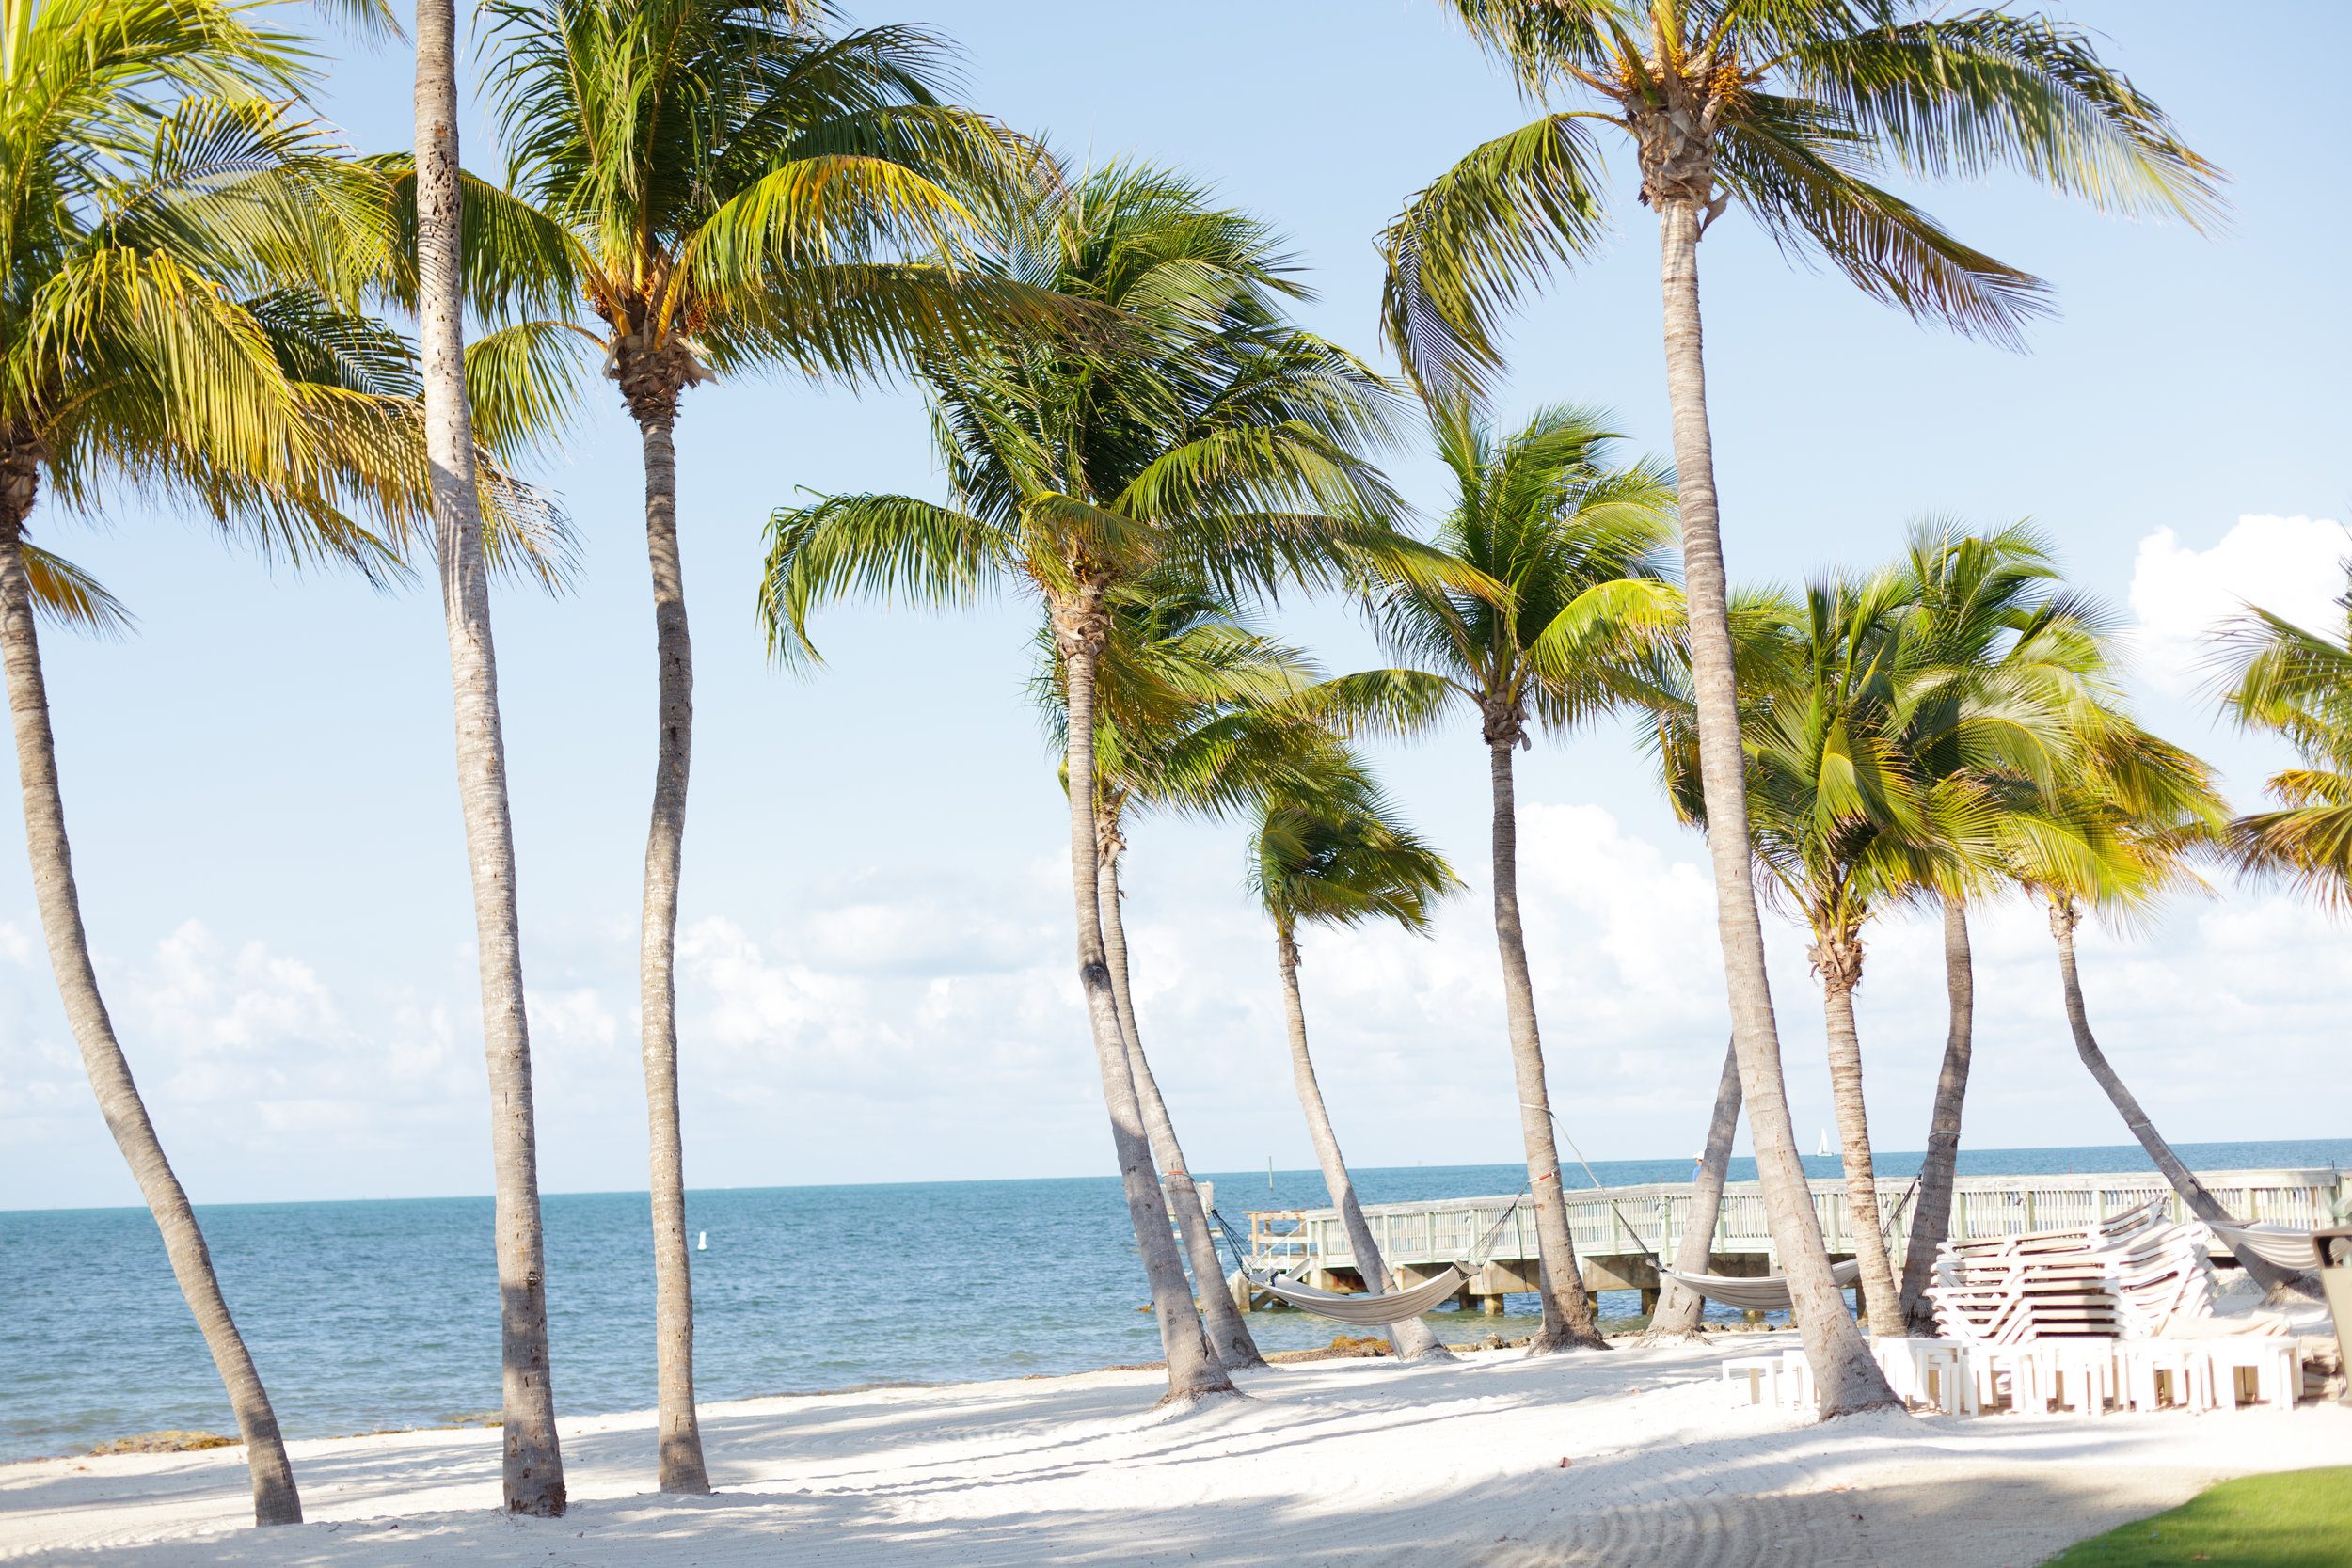 Tall palms swaying in the wind on a Key West beach.